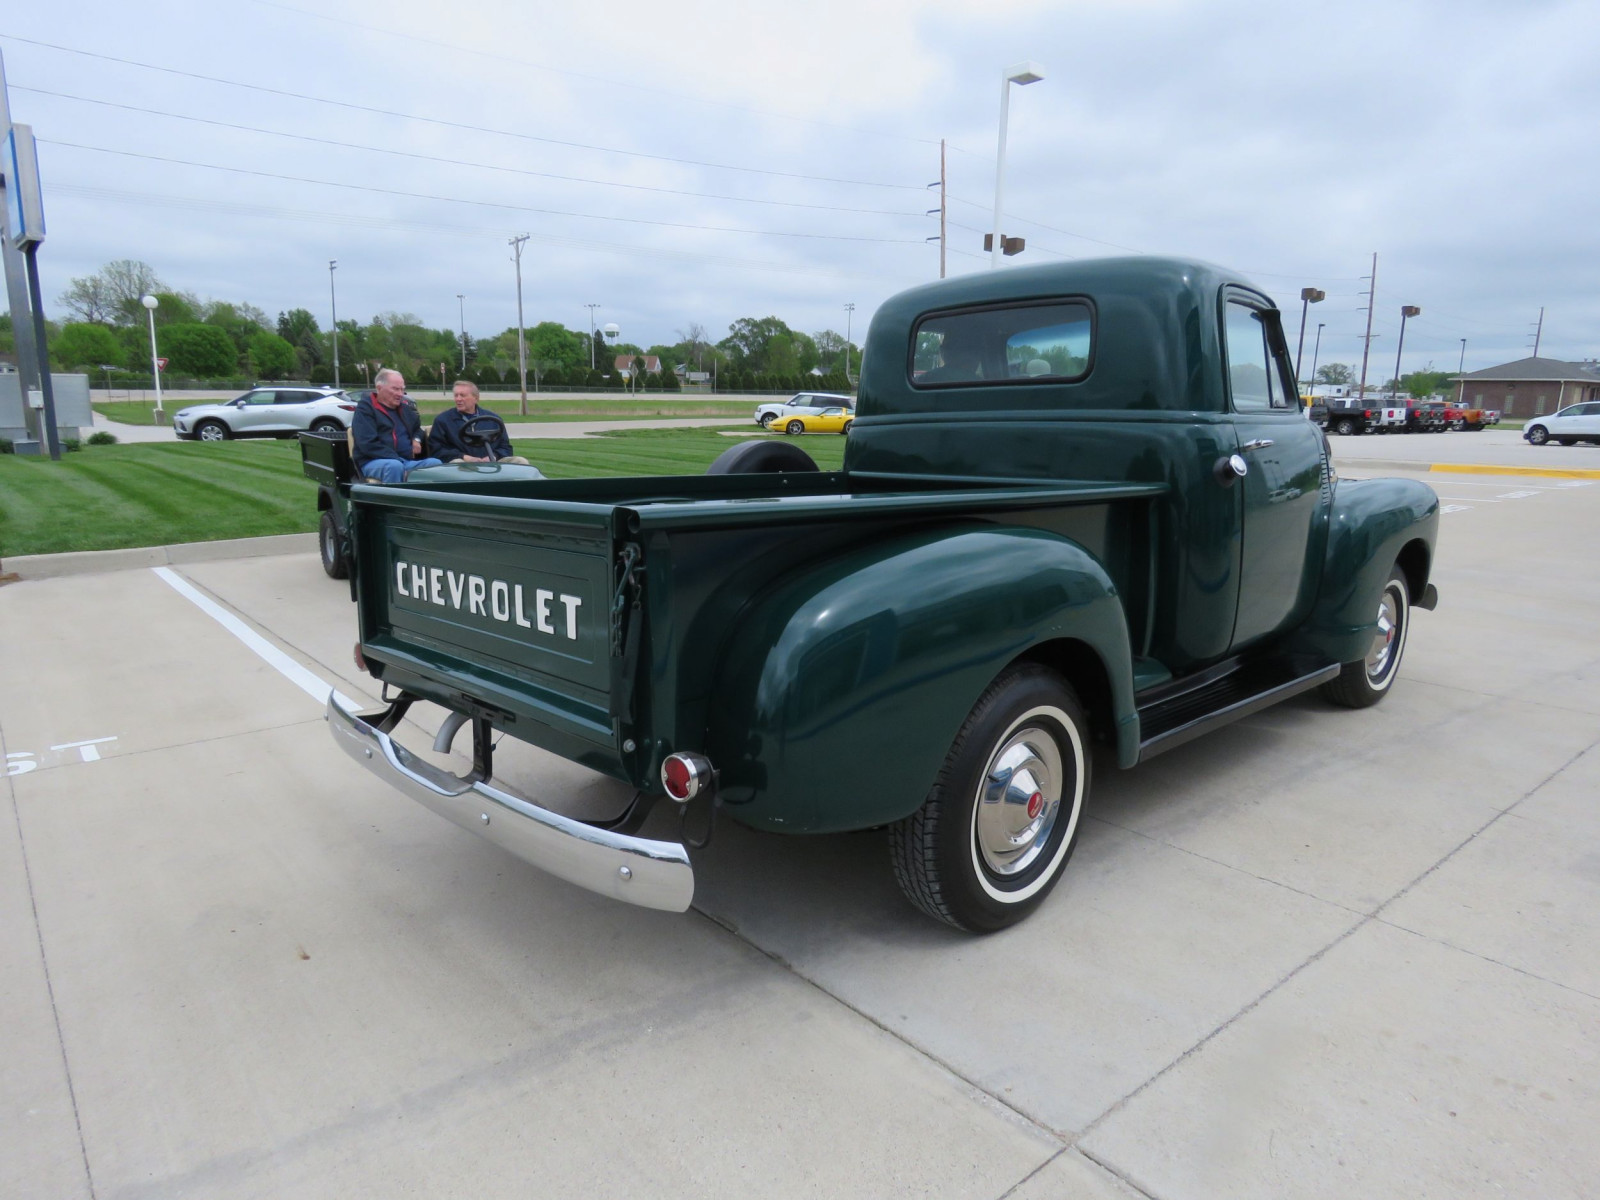 1954 Chevrolet 3100 Series Pickup - Image 7